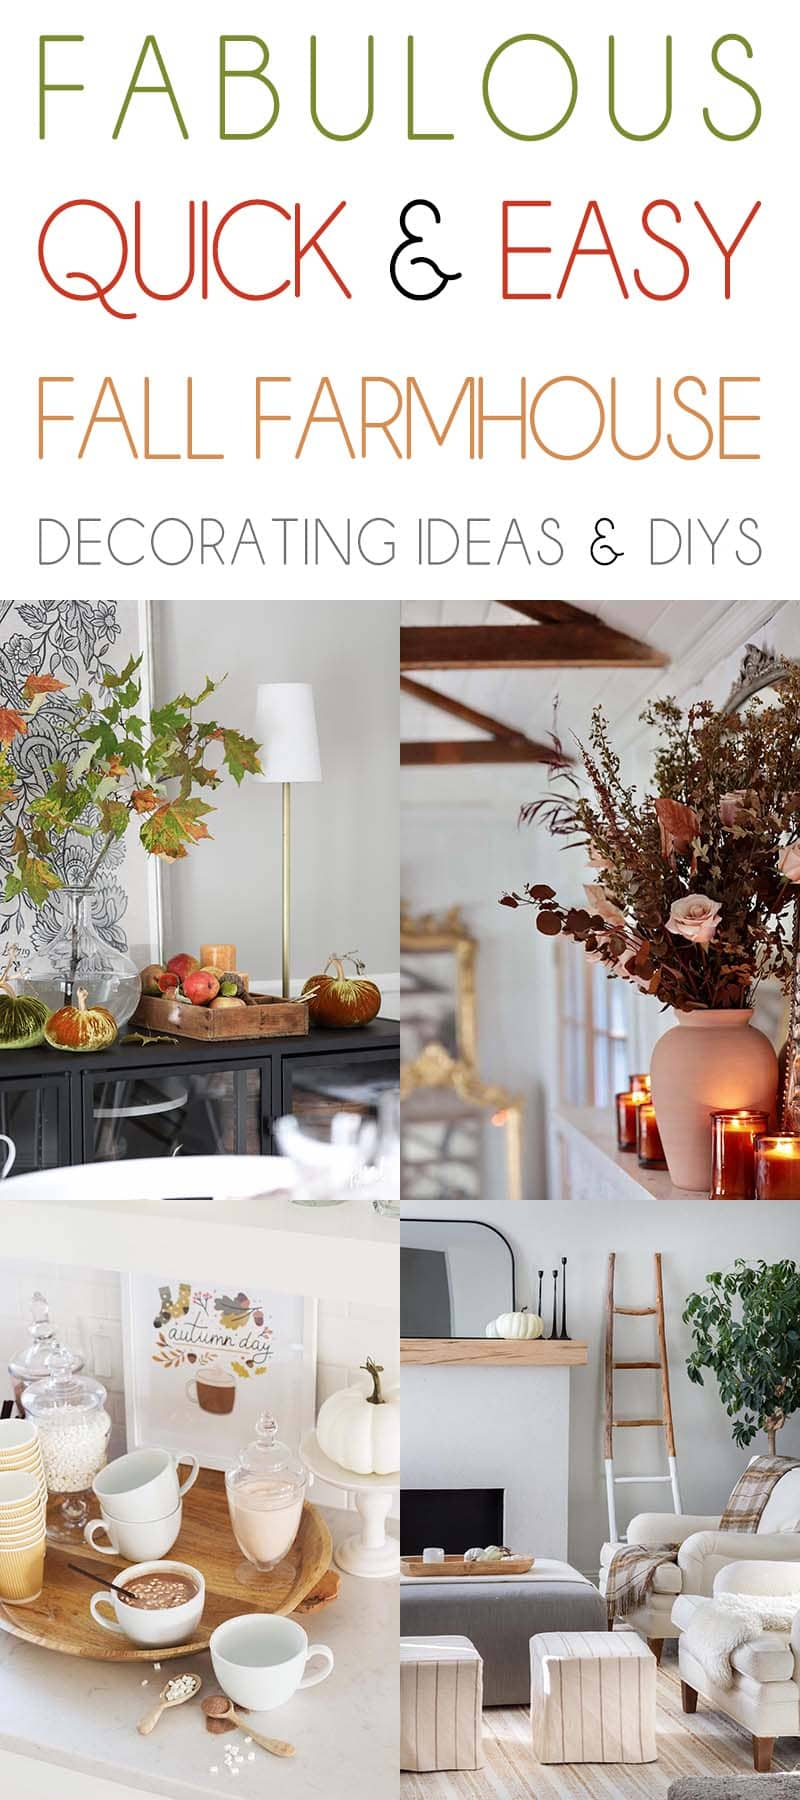 Looking to add a little bit of Fall to your Farmhouse Decor? Well how about trying one or two of these Quick and Easy Fall Farmhouse Decorating Ideas!